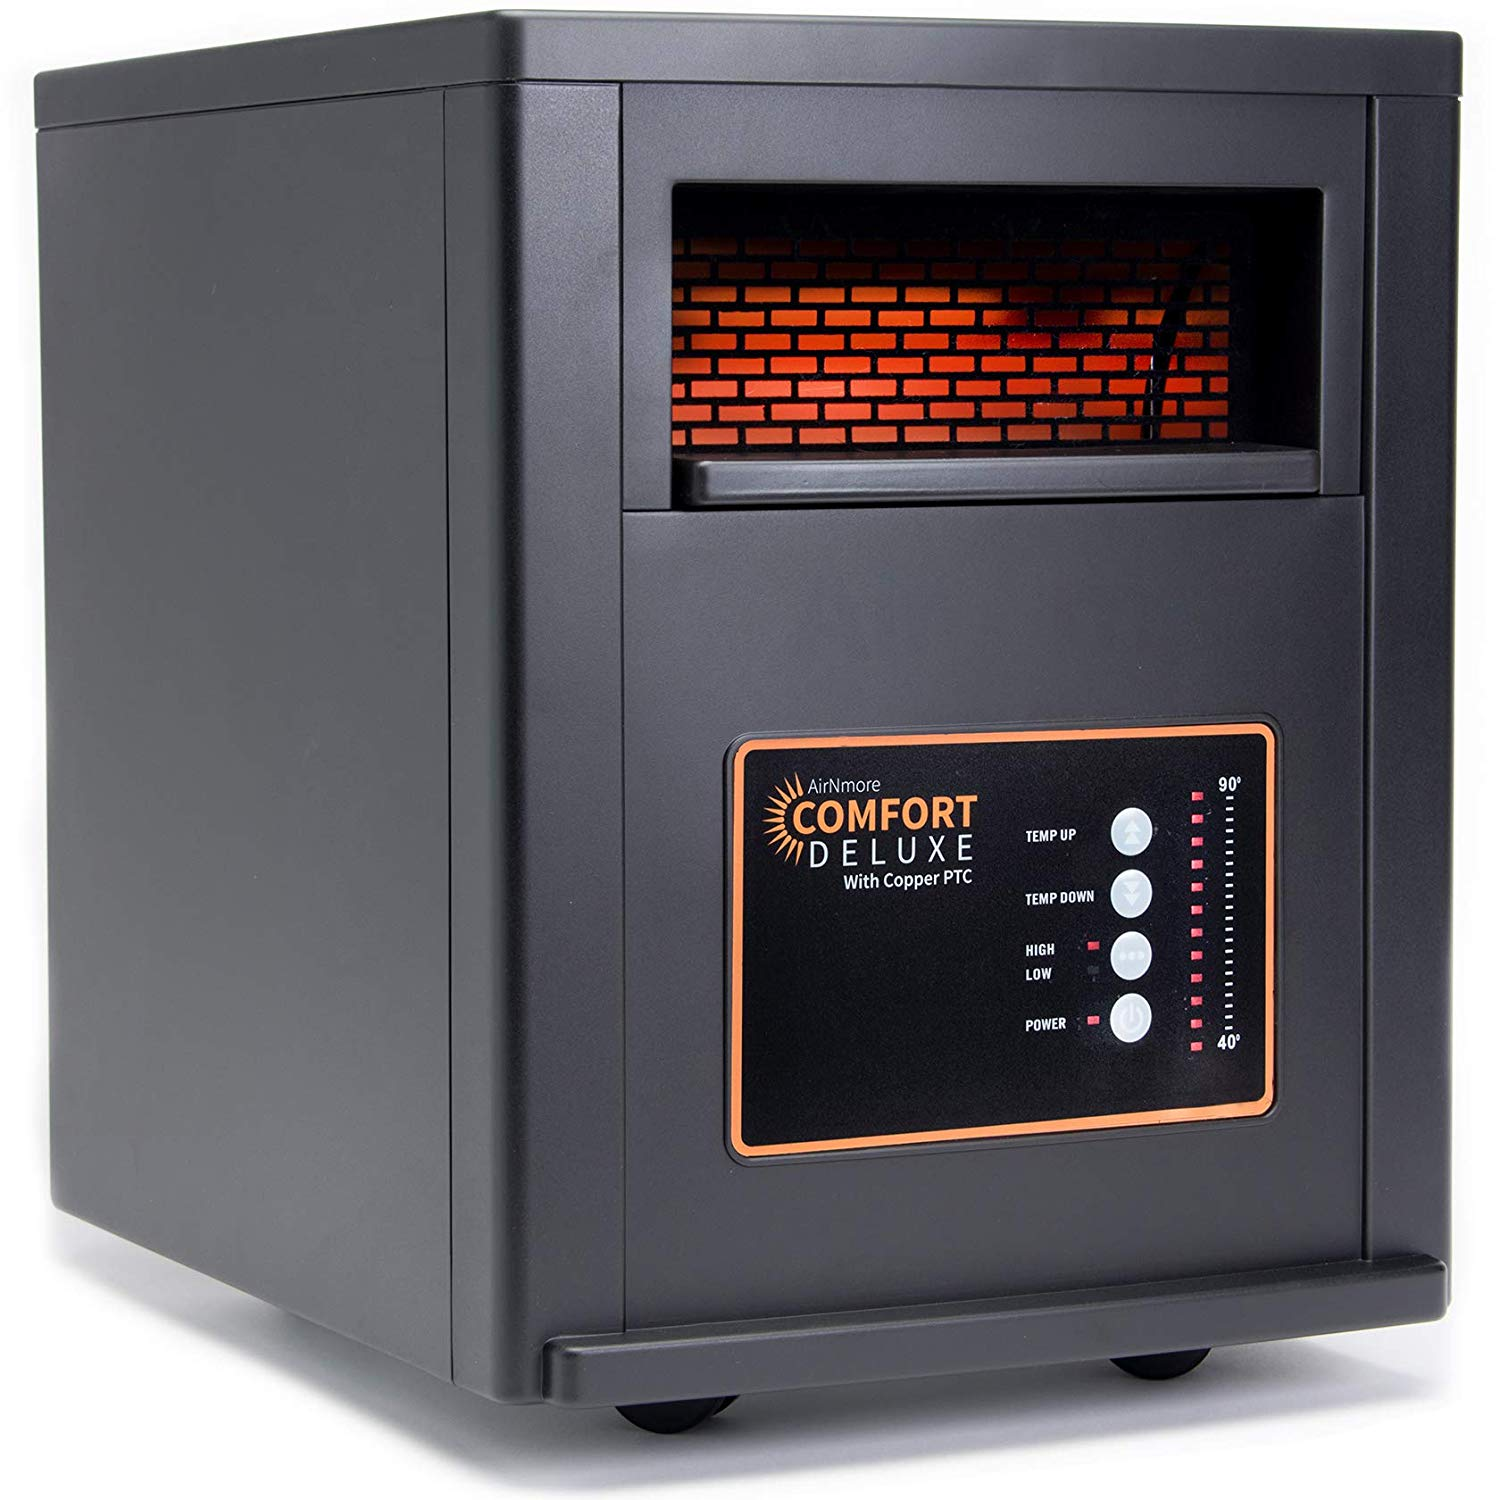 AirNmore Comfort Delux Electric Infrared Heater